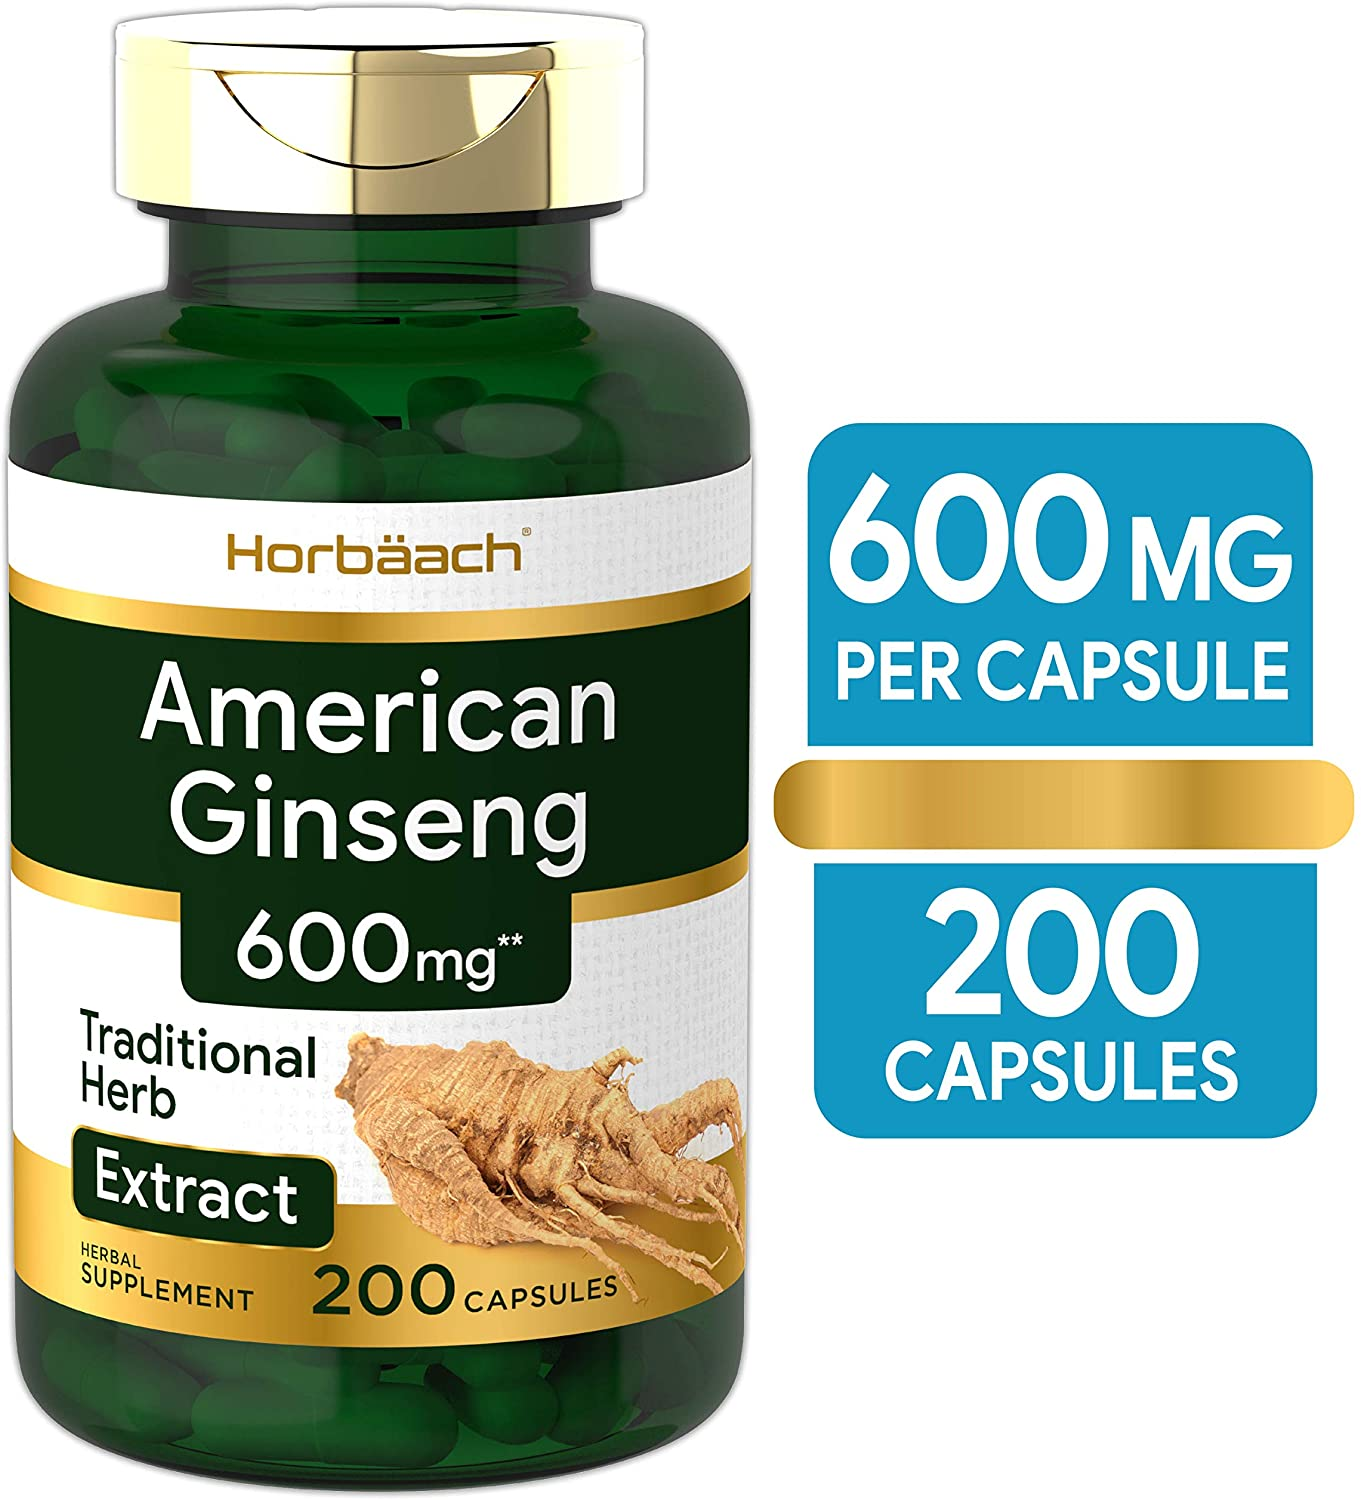 American Ginseng Capsules   600 mg   200 Count   Non-GMO, Gluten Free Supplement   Ginseng Root Extract Complex   by Horbaach